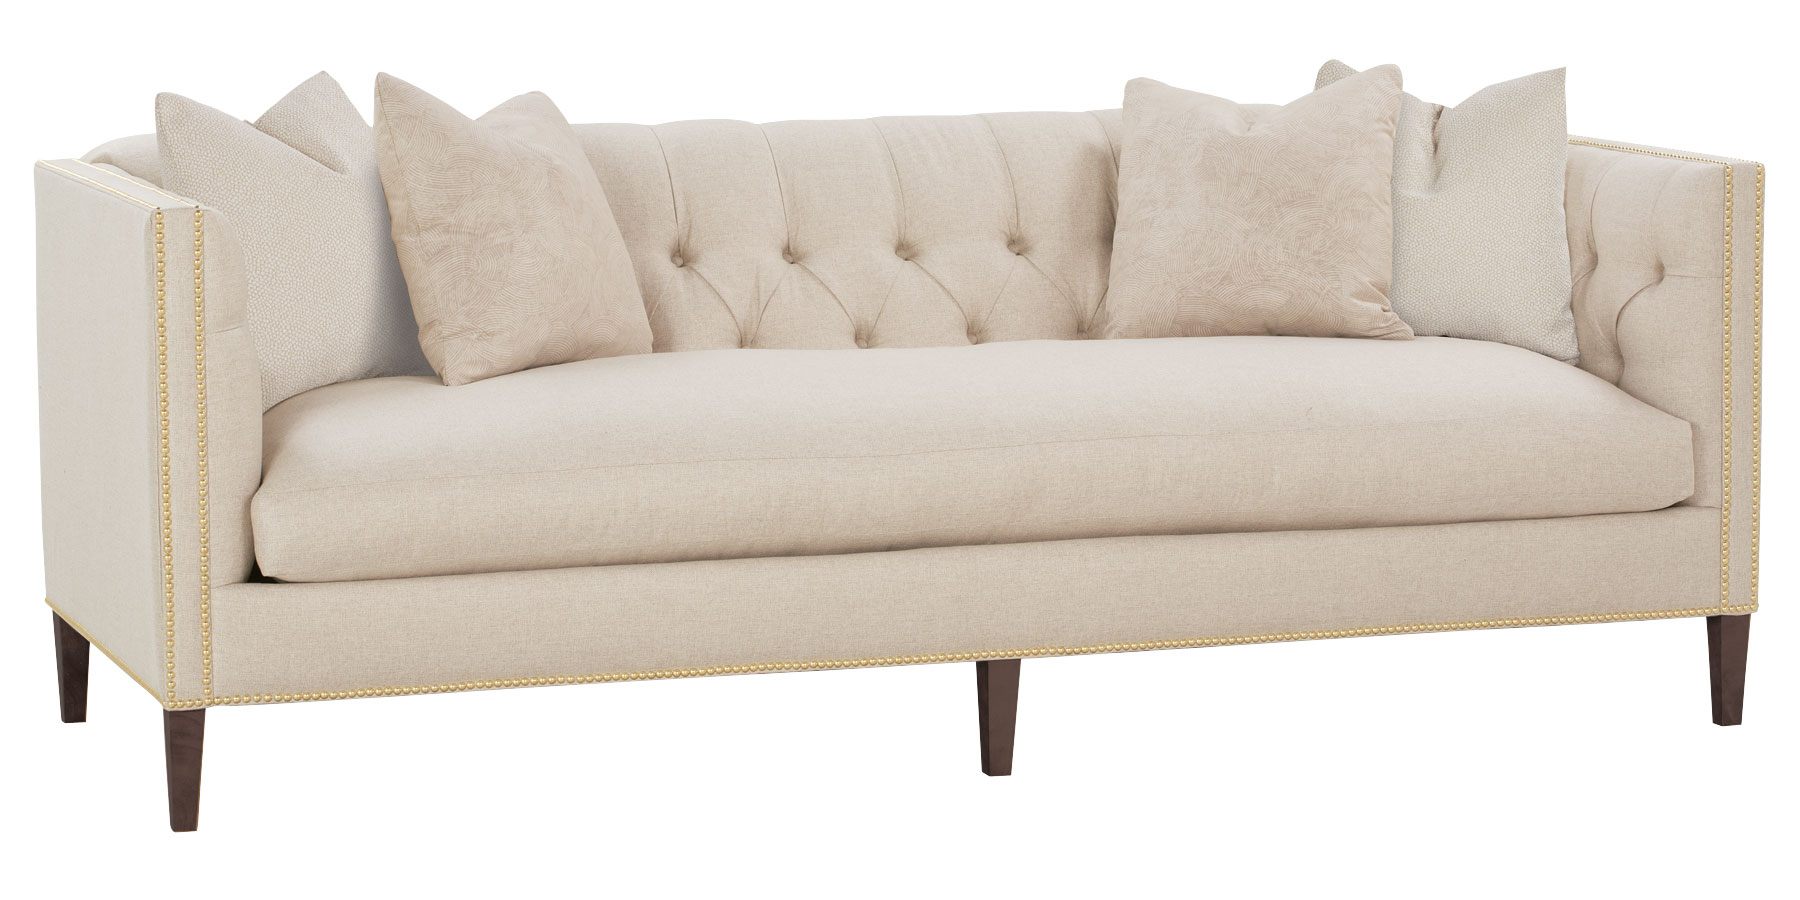 Upholstered Tight Back Single Seat Sofa Collection Club